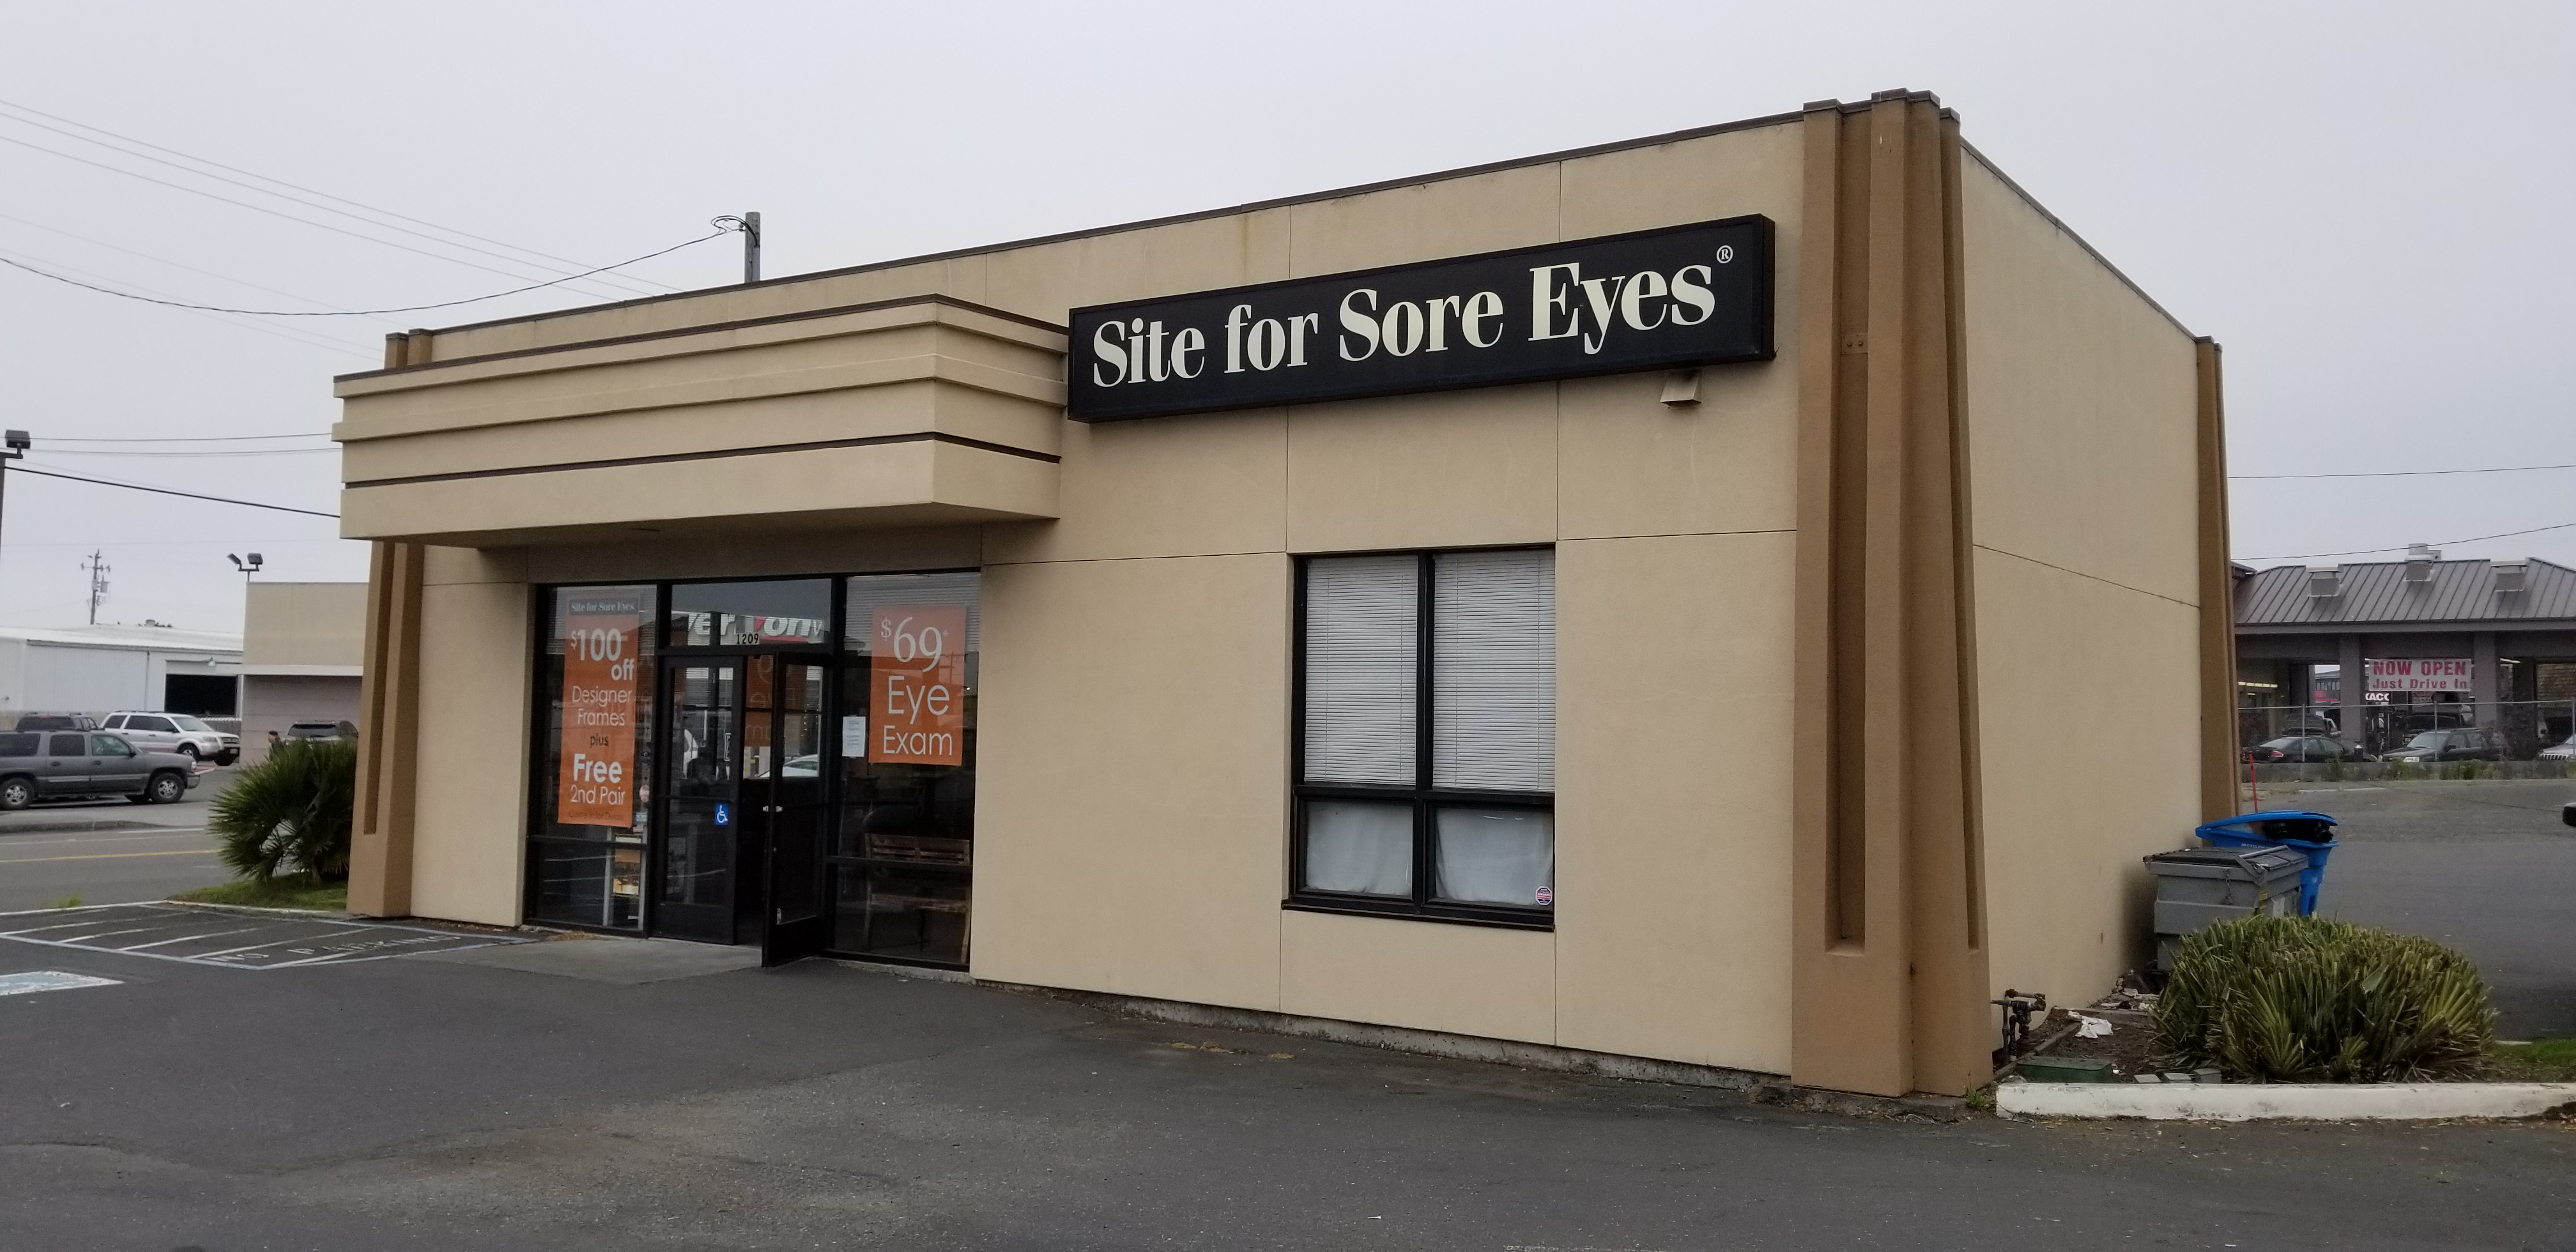 Site for Sore Eyes Eureka